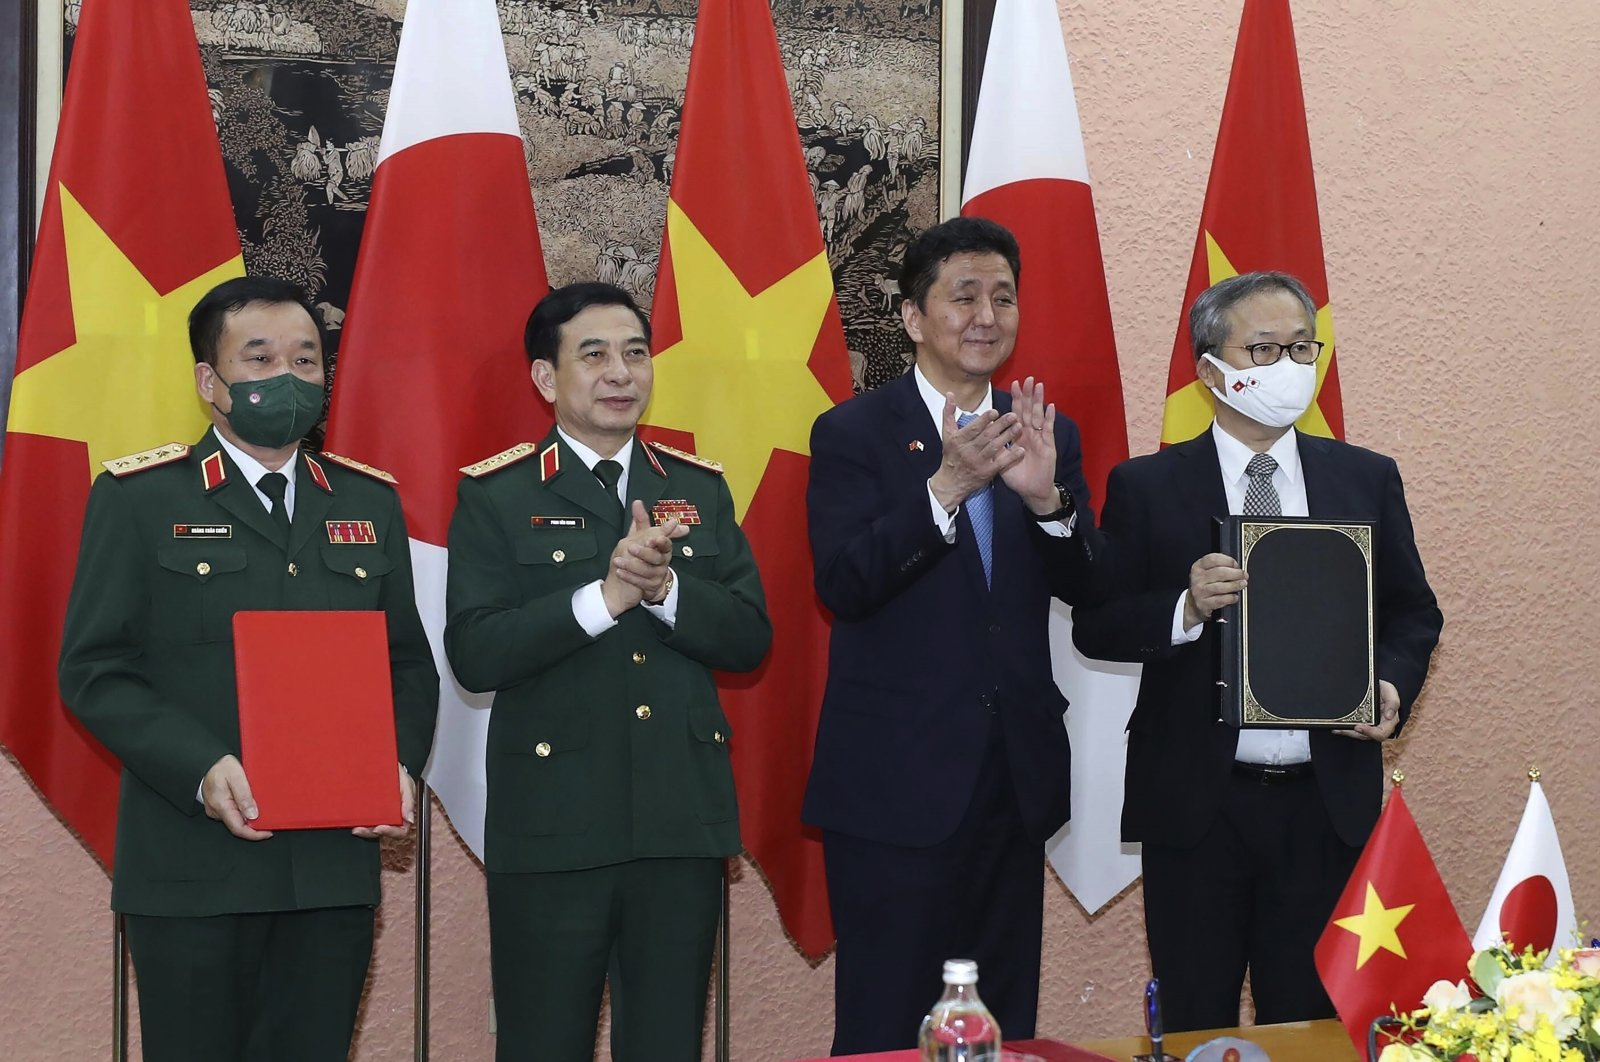 Vietnamese Defense Minister Phan Van Giang, center left, and Japanese Defense Minister Nobuo Kishi, center right, stand for photo with their officials after signing an agreement in Hanoi, Vietnam, Sept. 12, 2021. (AP Photo)